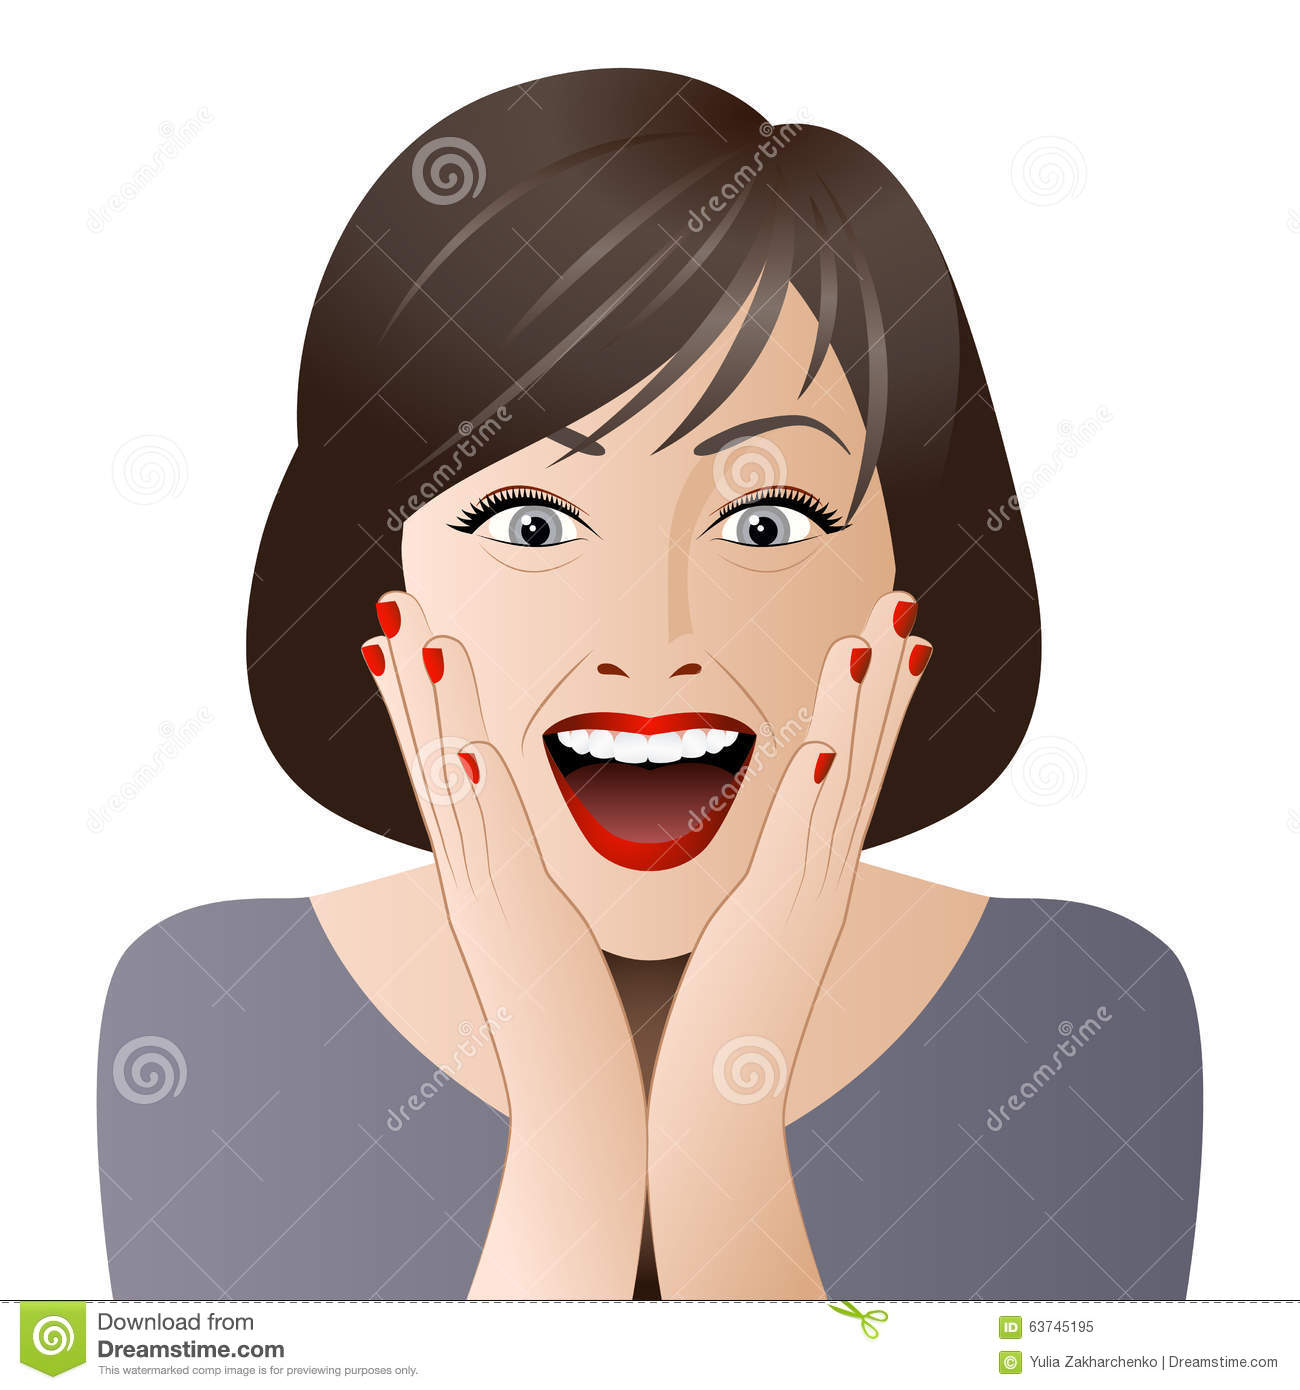 Surprised Woman Face For Sale Illustration Stock Vector ...